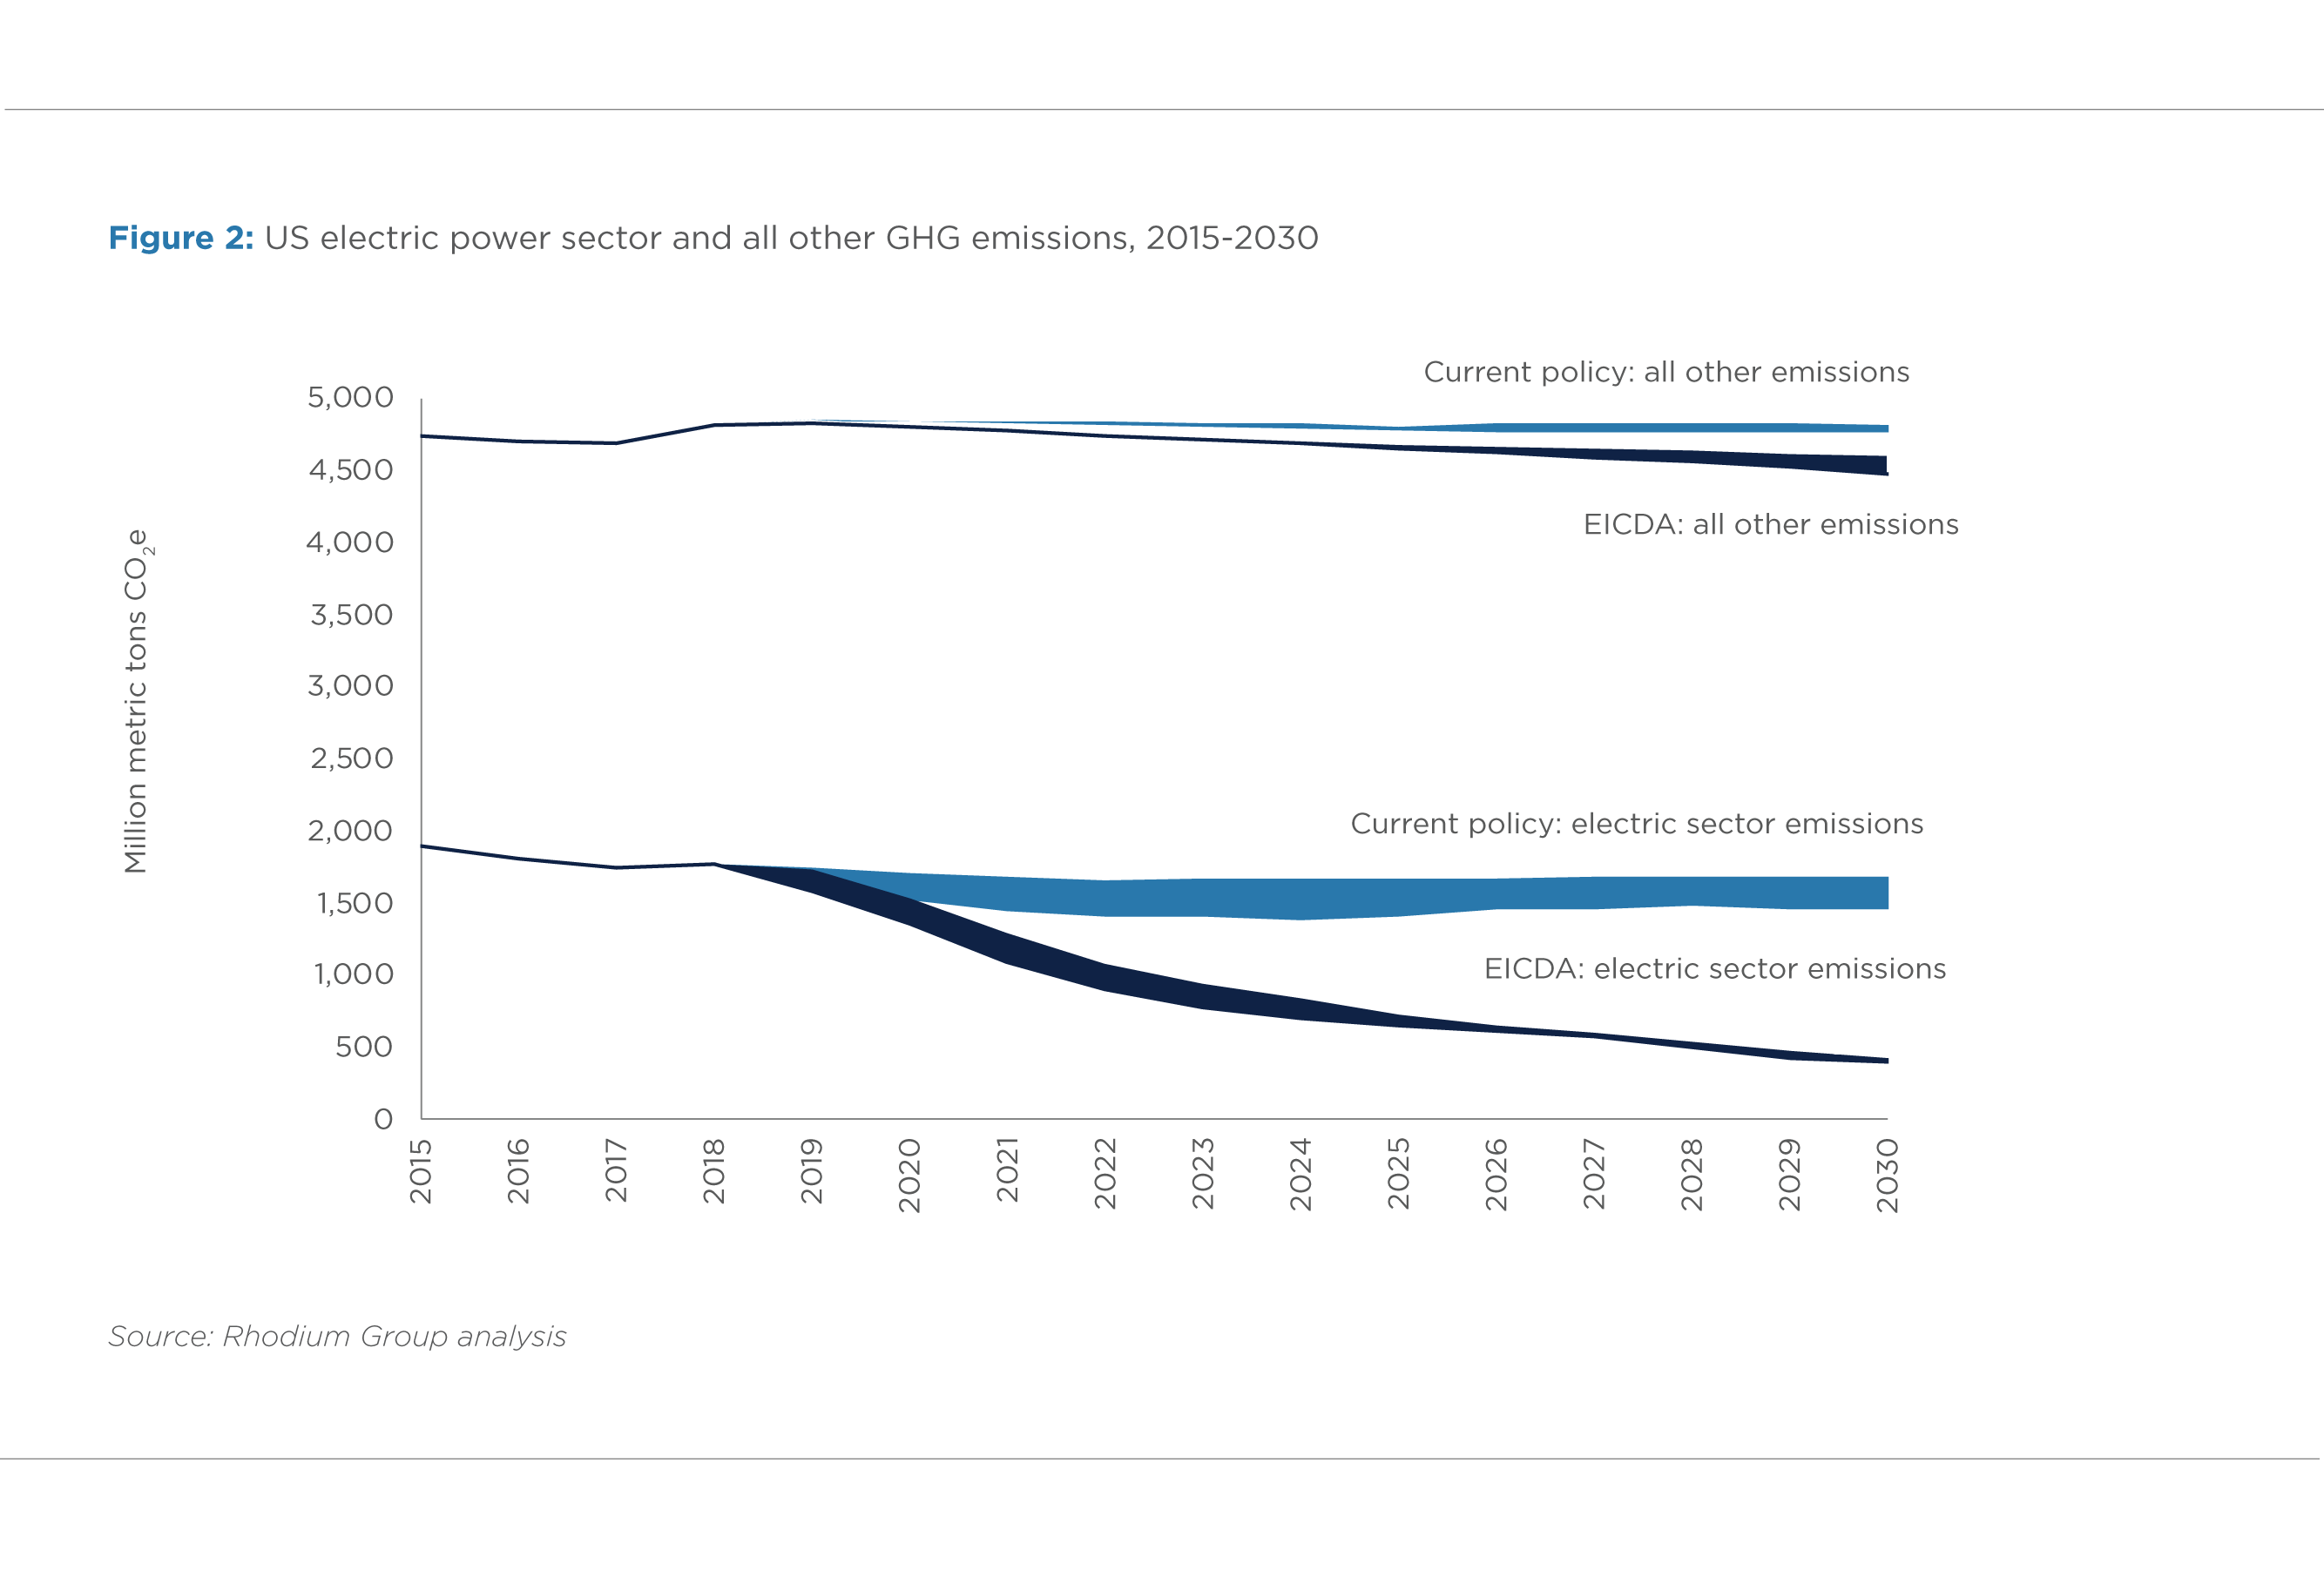 FIGURE 2. US ELECTRIC POWER SECTOR AND ALL OTHER GHG EMISSIONS, 2015-2030